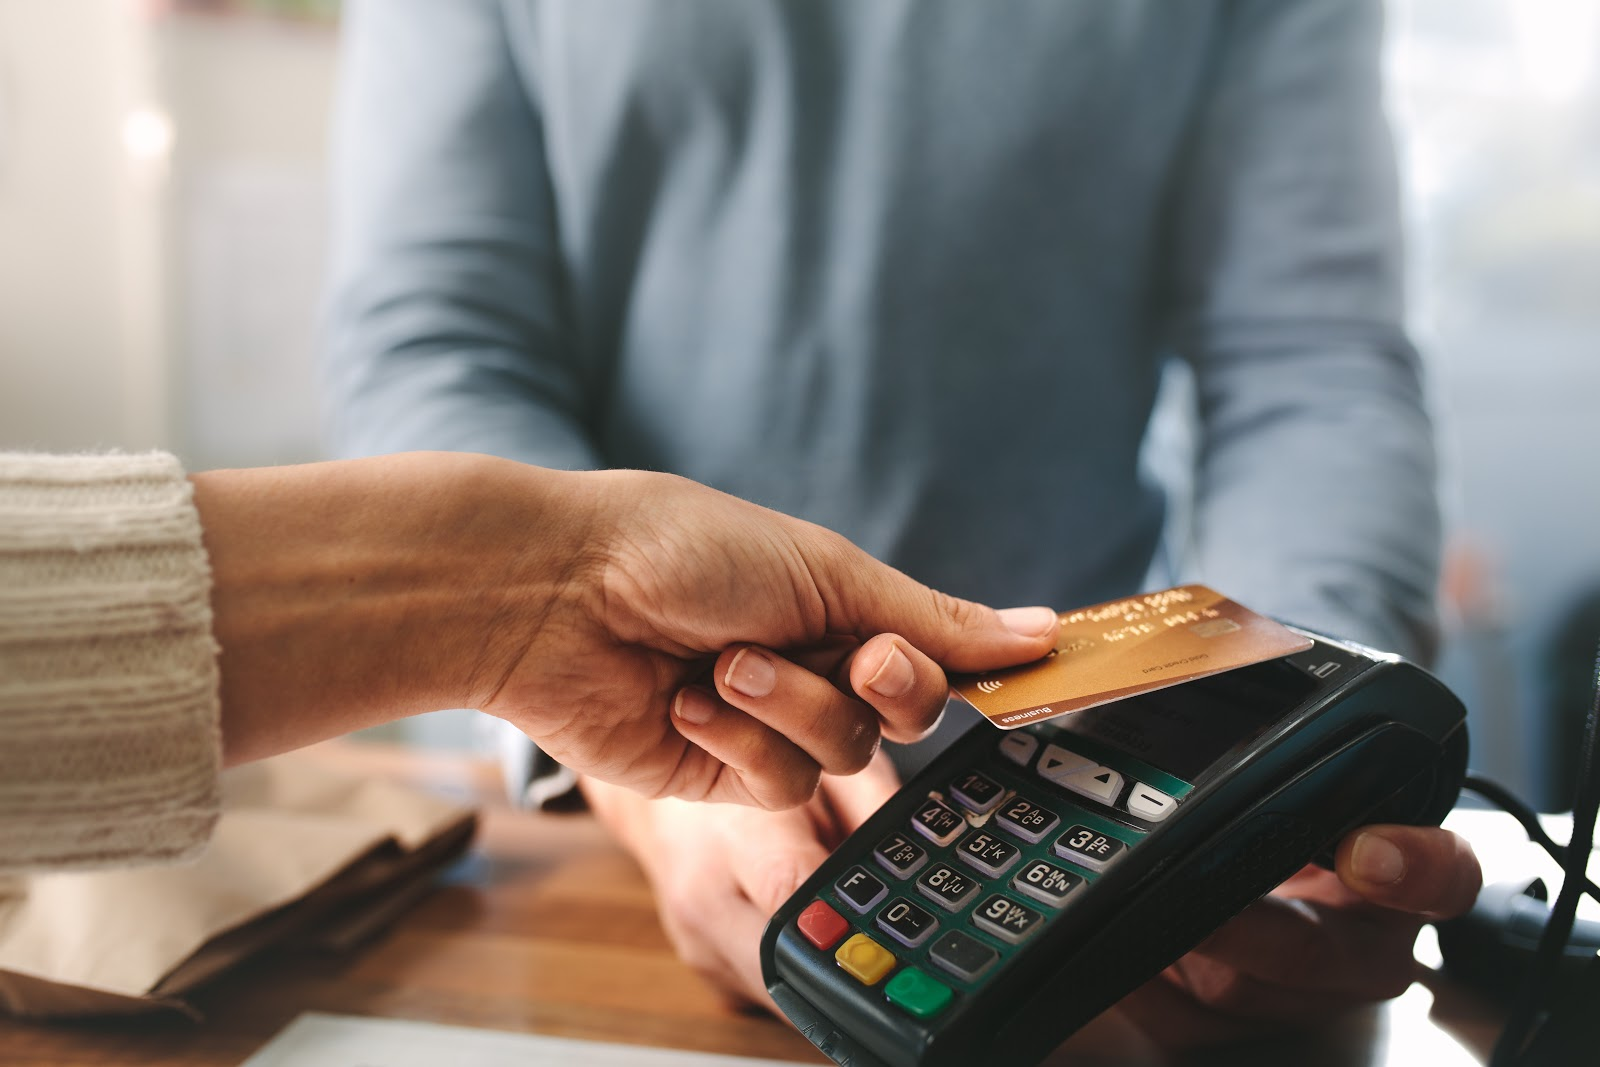 How much are credit card fees: A person using contactless credit card payment